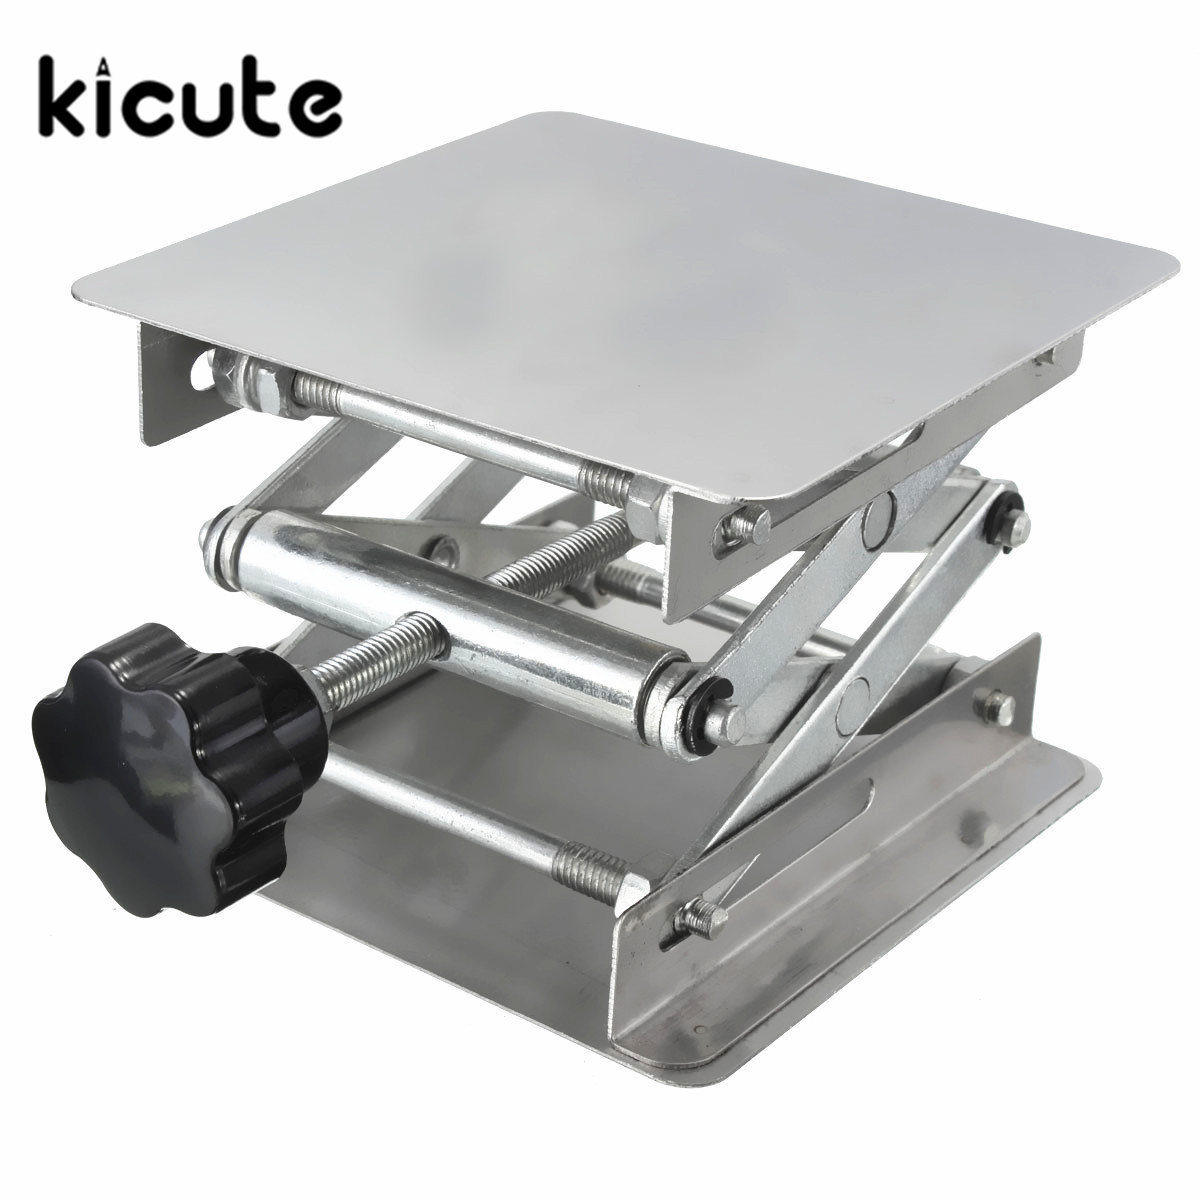 Kicute High Quality 100*100*160mm Stainless Steel Lab Jack Lifting Table Laboratory Platform Support Jack School Lab Supplie lab jack laboratory support jacks 200x200x280mm stainess steel painting lifting table raising platform 8 inch export to europe